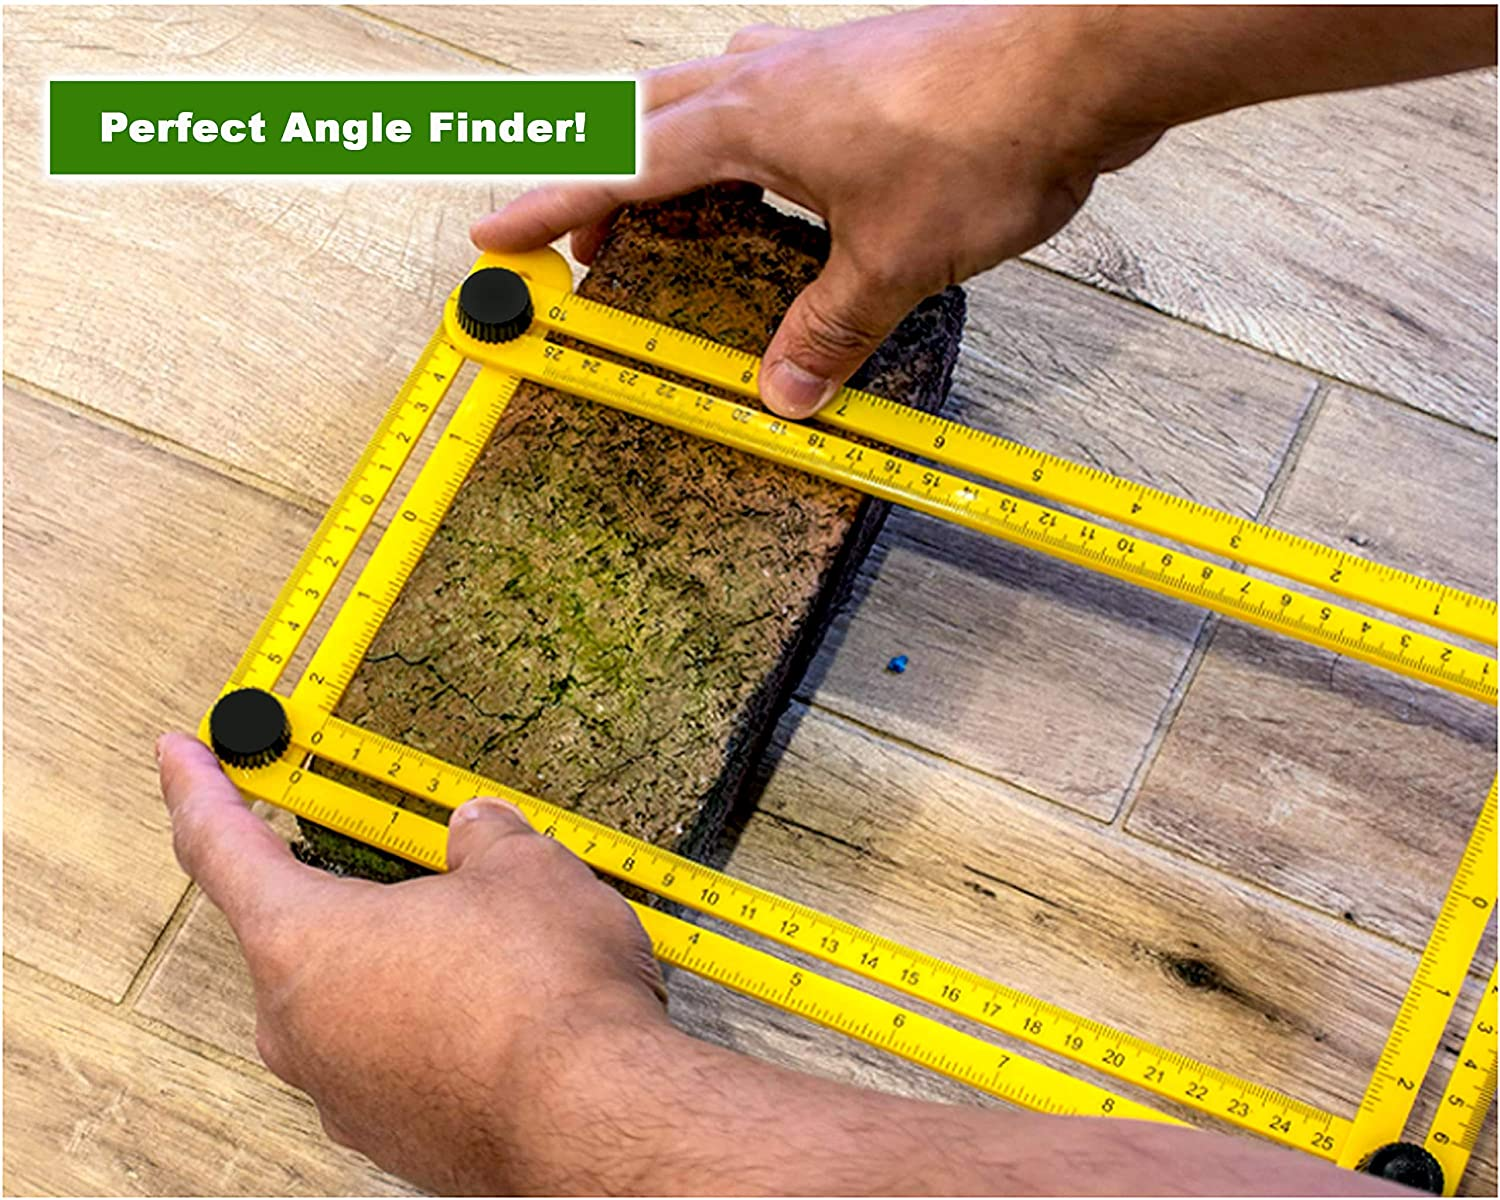 Universal Adjustable Multi Functional Angle Finder Measuring Ruler Yellow valtterisperfectproducts 1 DIY Projects//Home Improvement//Tiling//Carpentry//Brickwork//Flooring Plastic Angleizer Template Tool by Zebbo